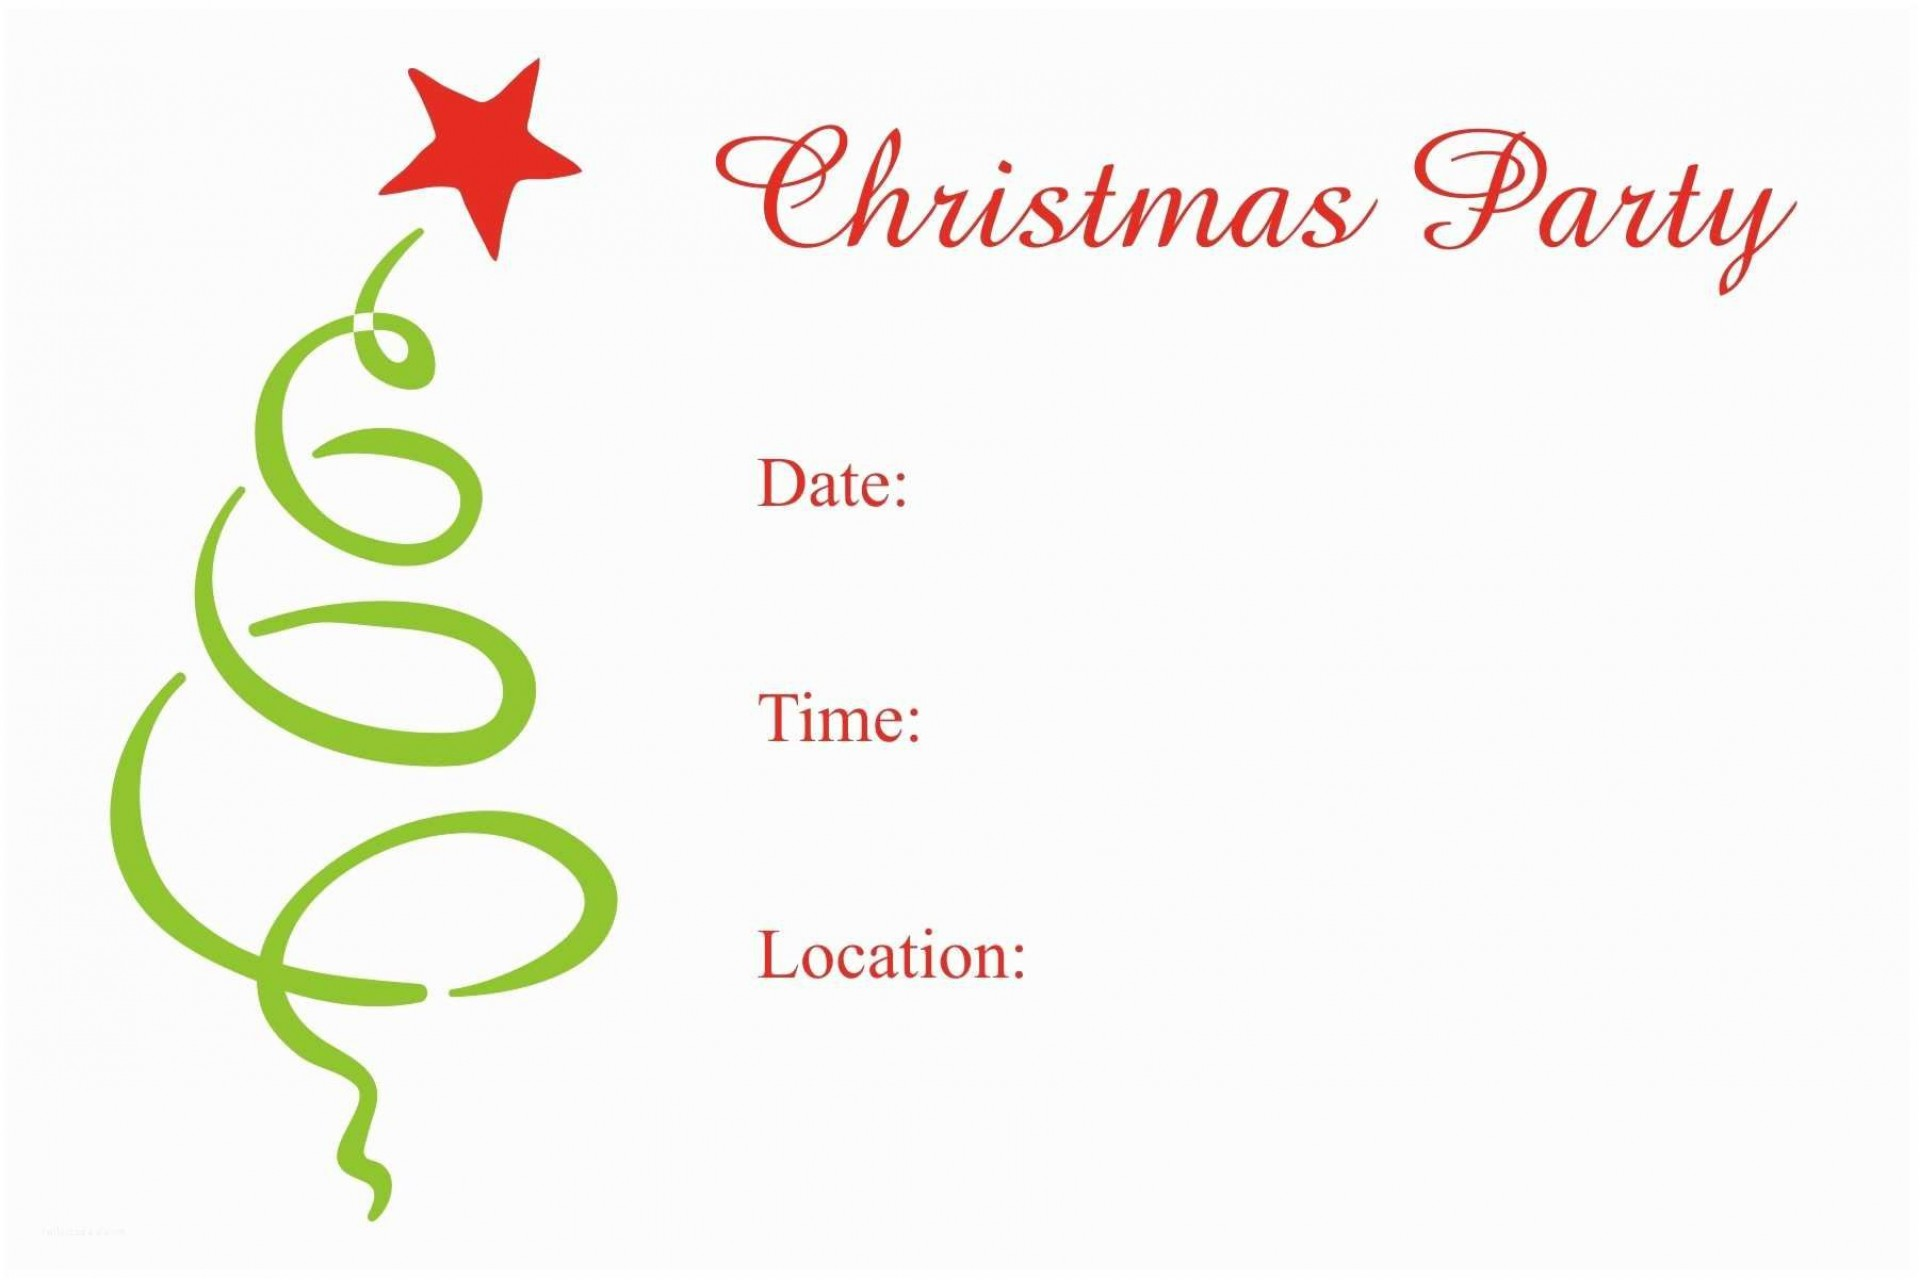 007 Archaicawful Christma Party Invitation Template Highest Clarity  Funny Free Download Word Card1920